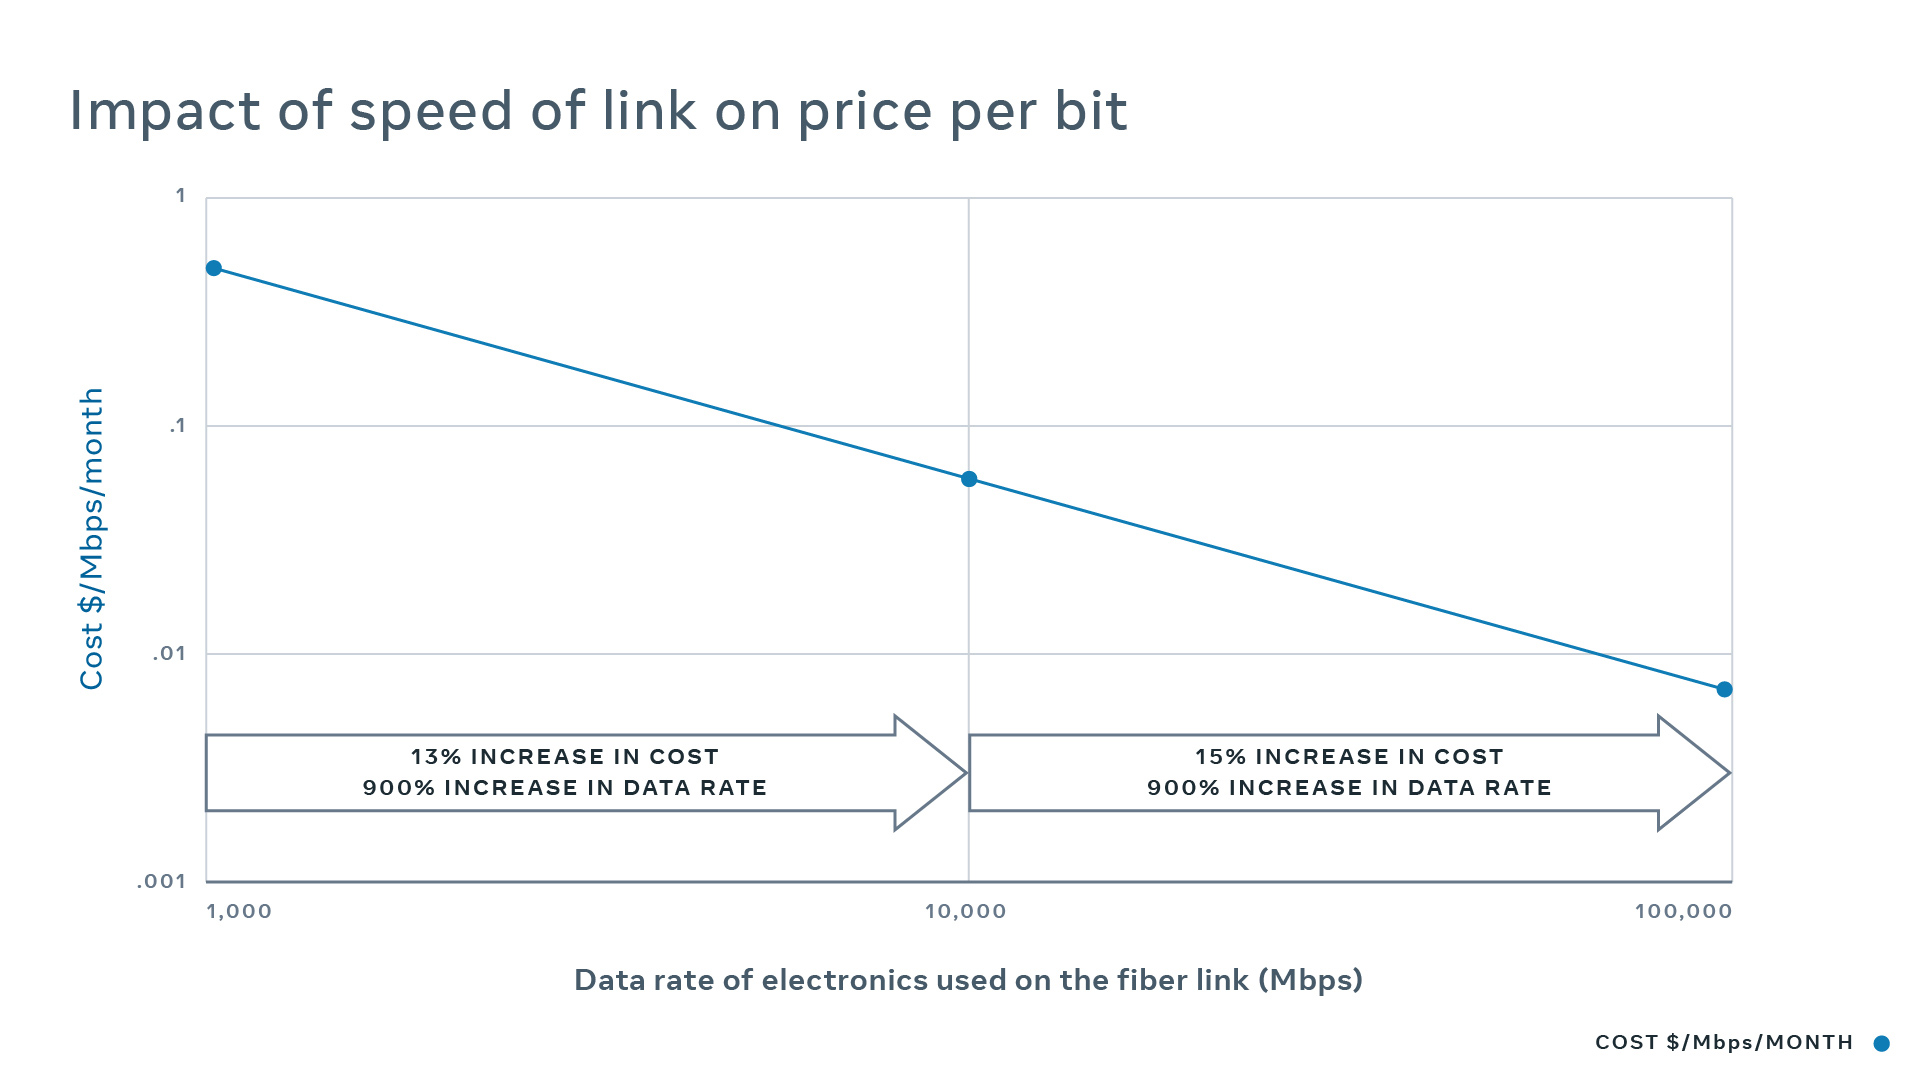 Aerial fiber deployment: Chart shows how the price of a unit of data capacity falls as the speed of the link is increased due to the cost increasing by a smaller rate than the corresponding speed increase